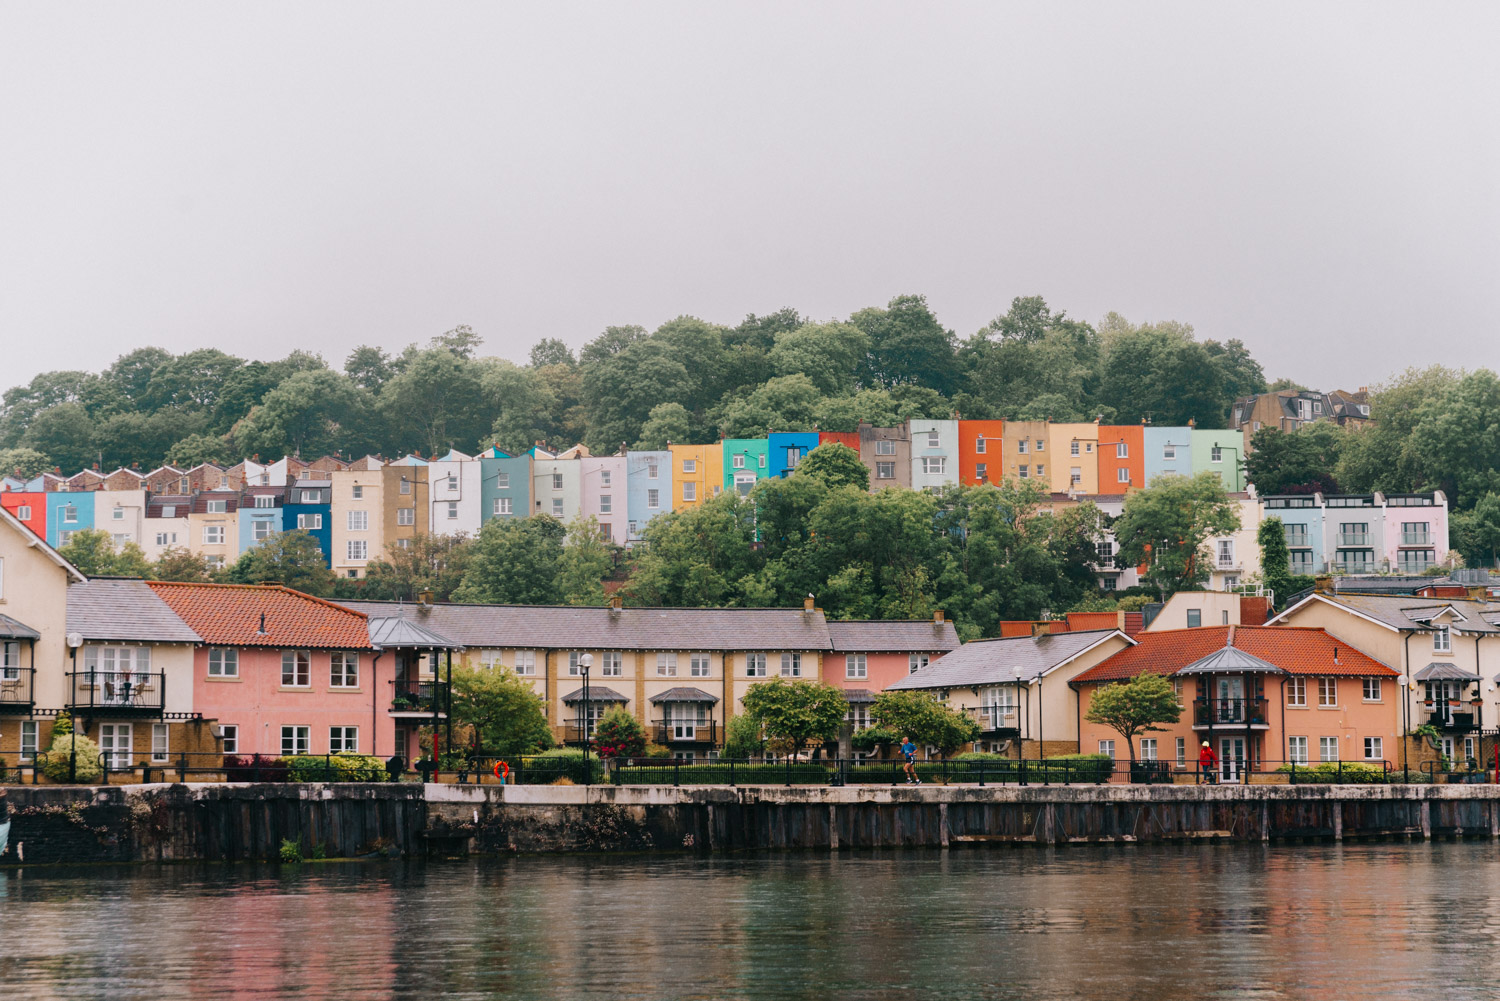 Colorful houses - Bristol's Harbourside |Travel Guide to Bristol